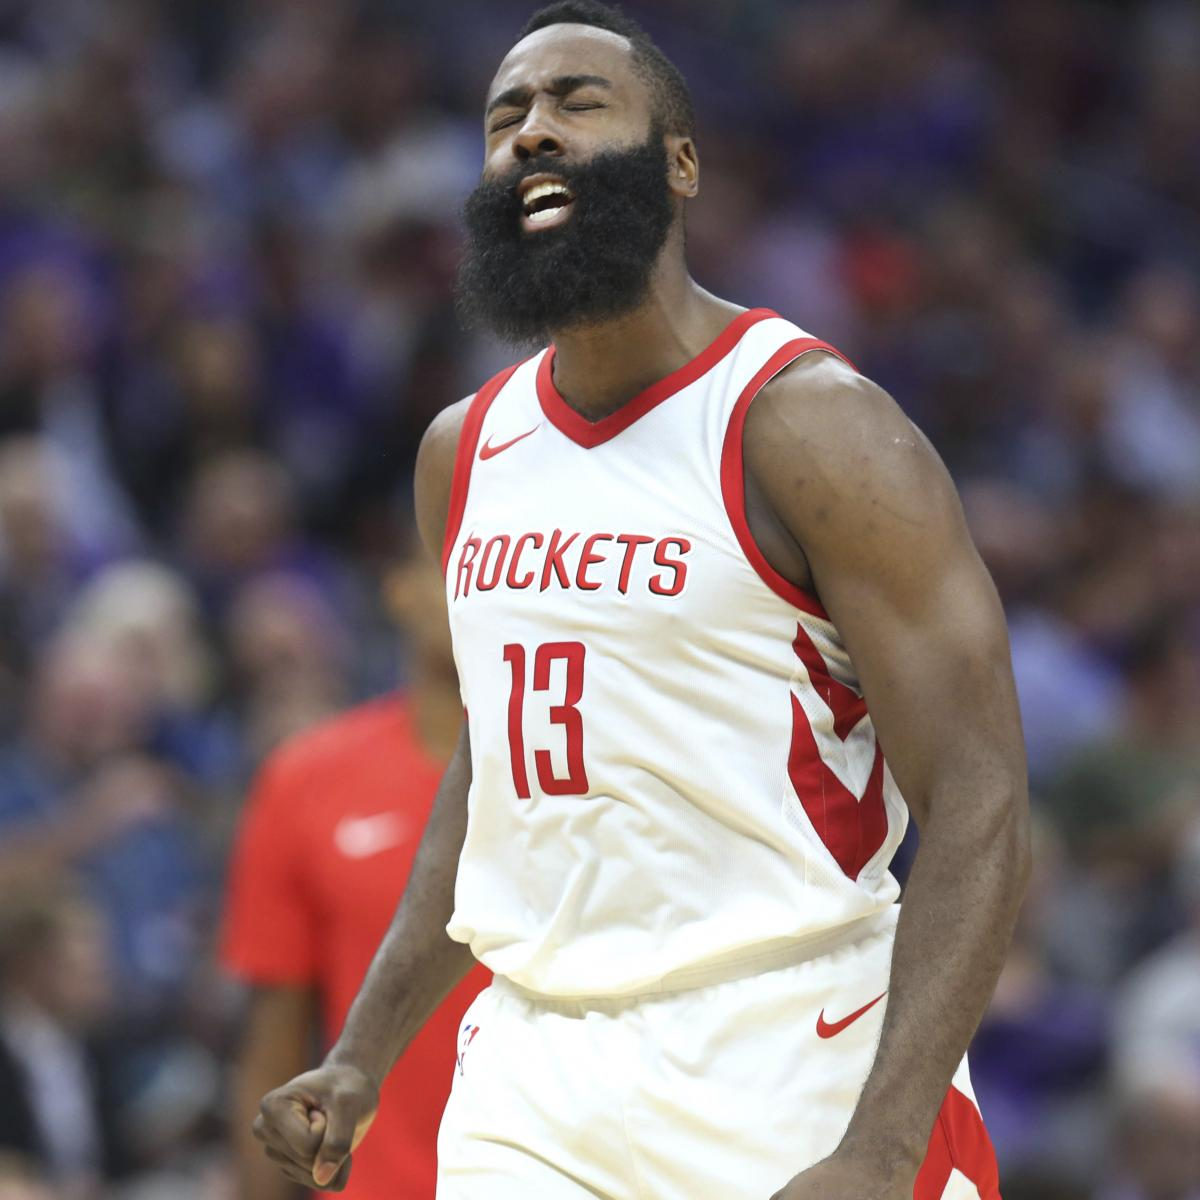 James Harden Injury Report: James Harden To Return From Hamstring Injury Vs. T-Wolves